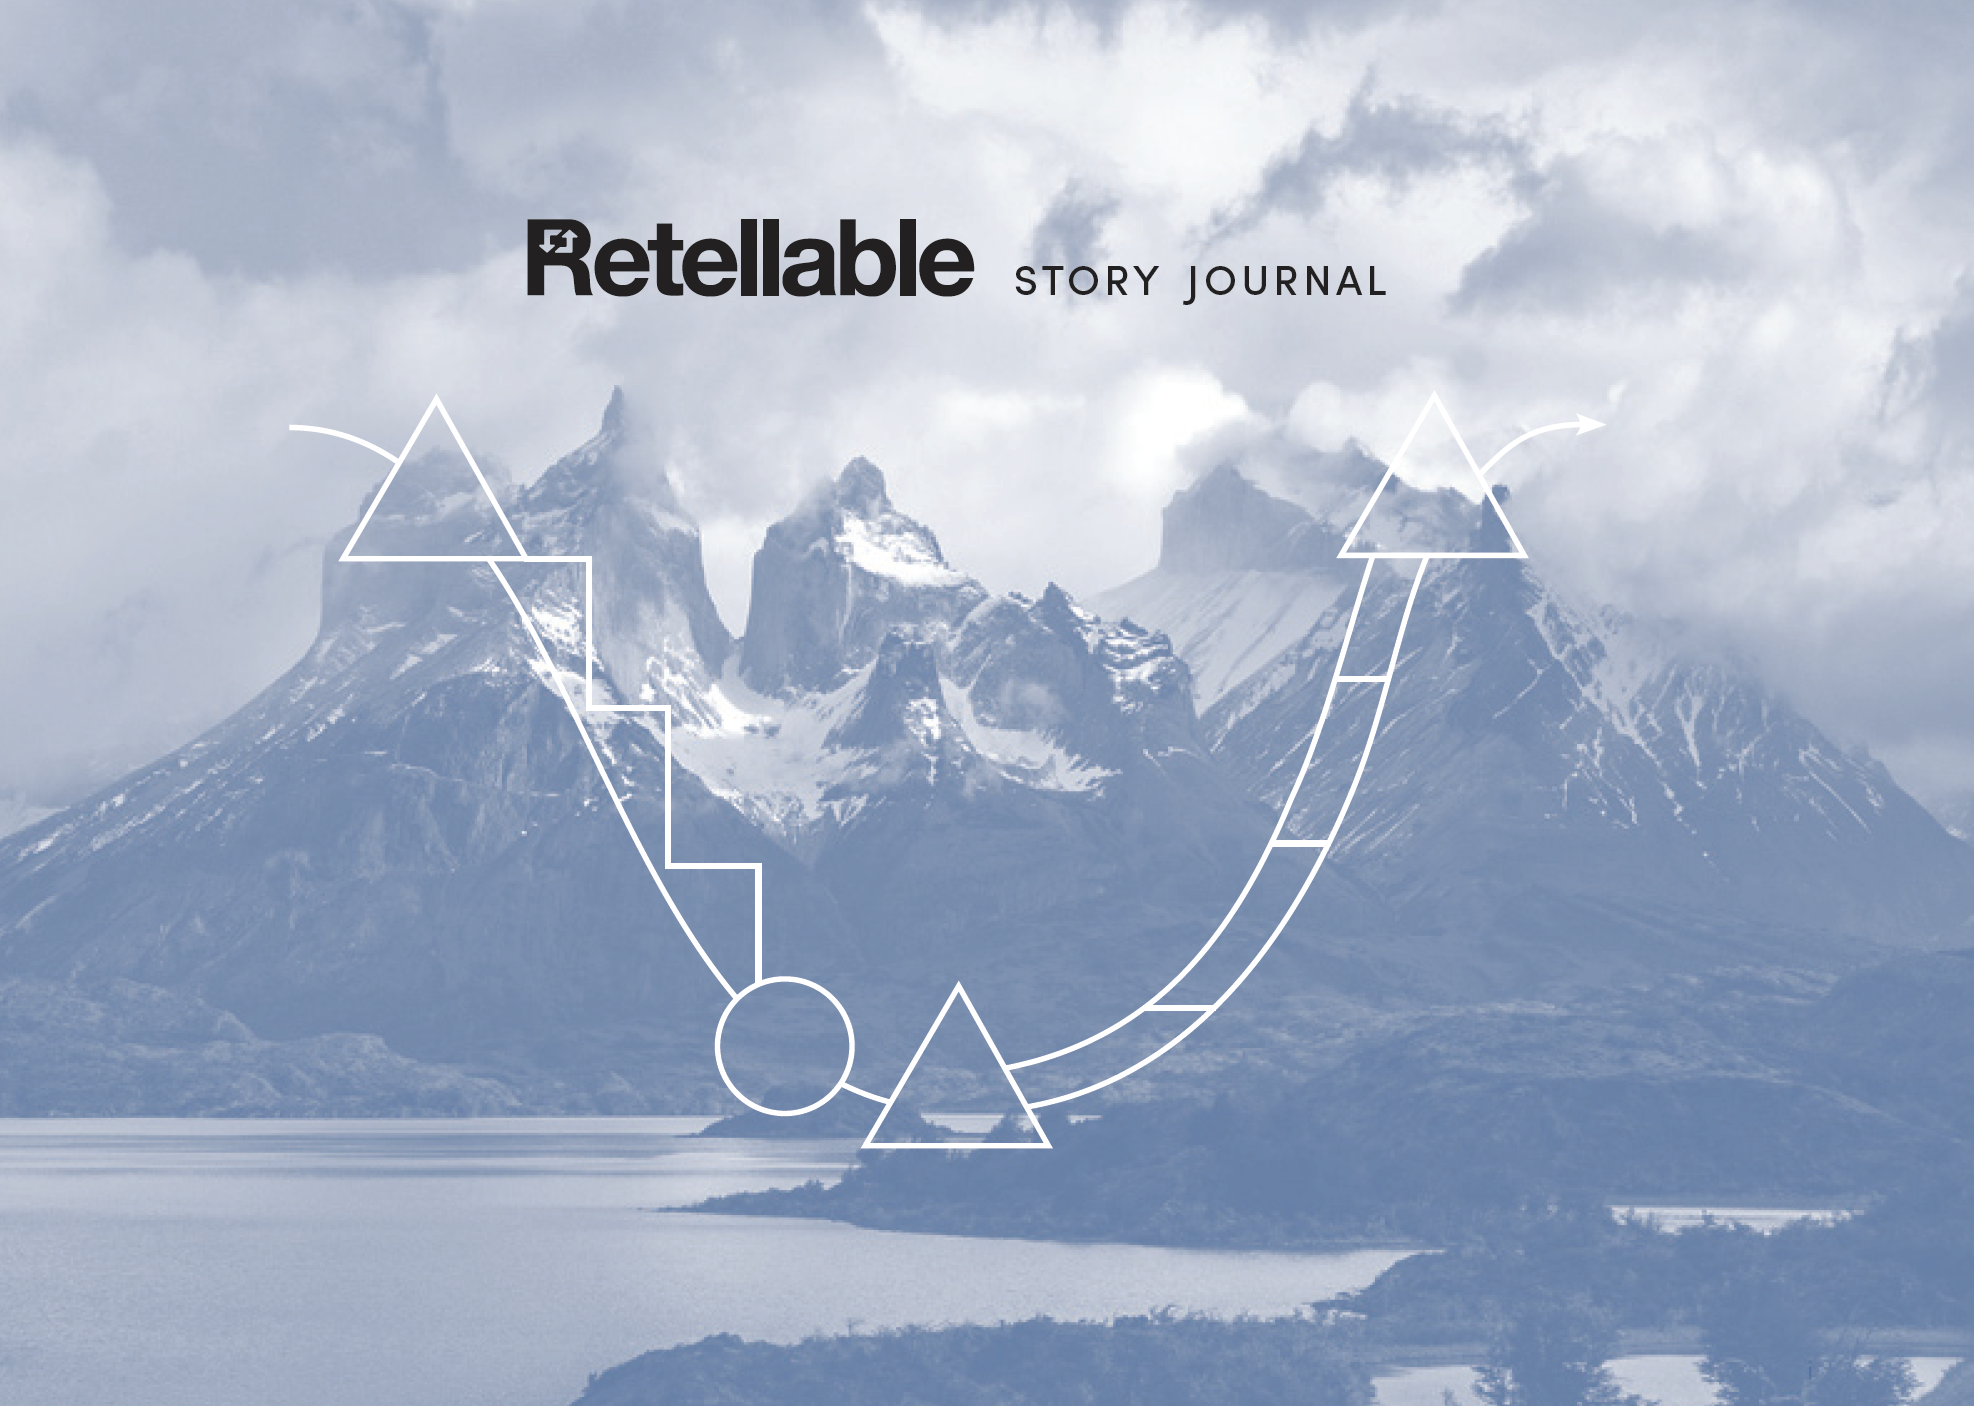 Retellable Story Journal